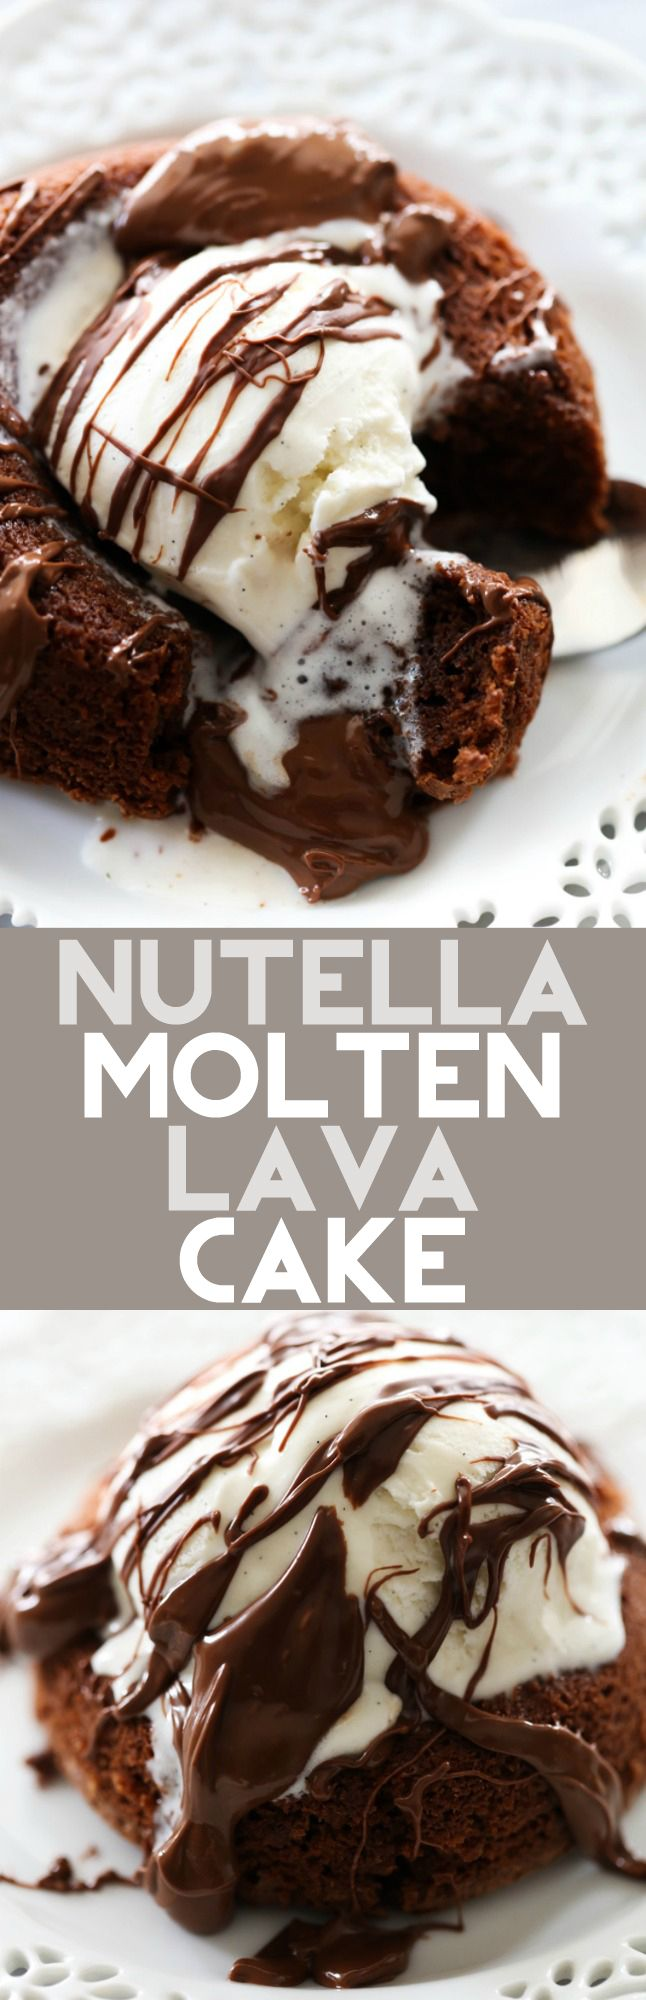 This Nutella Molten Lava Cake is infused with delicious Nutella. It starts melting out the moment you cut into it and enriches every bite. This is one heavenly dessert you won't want to mis